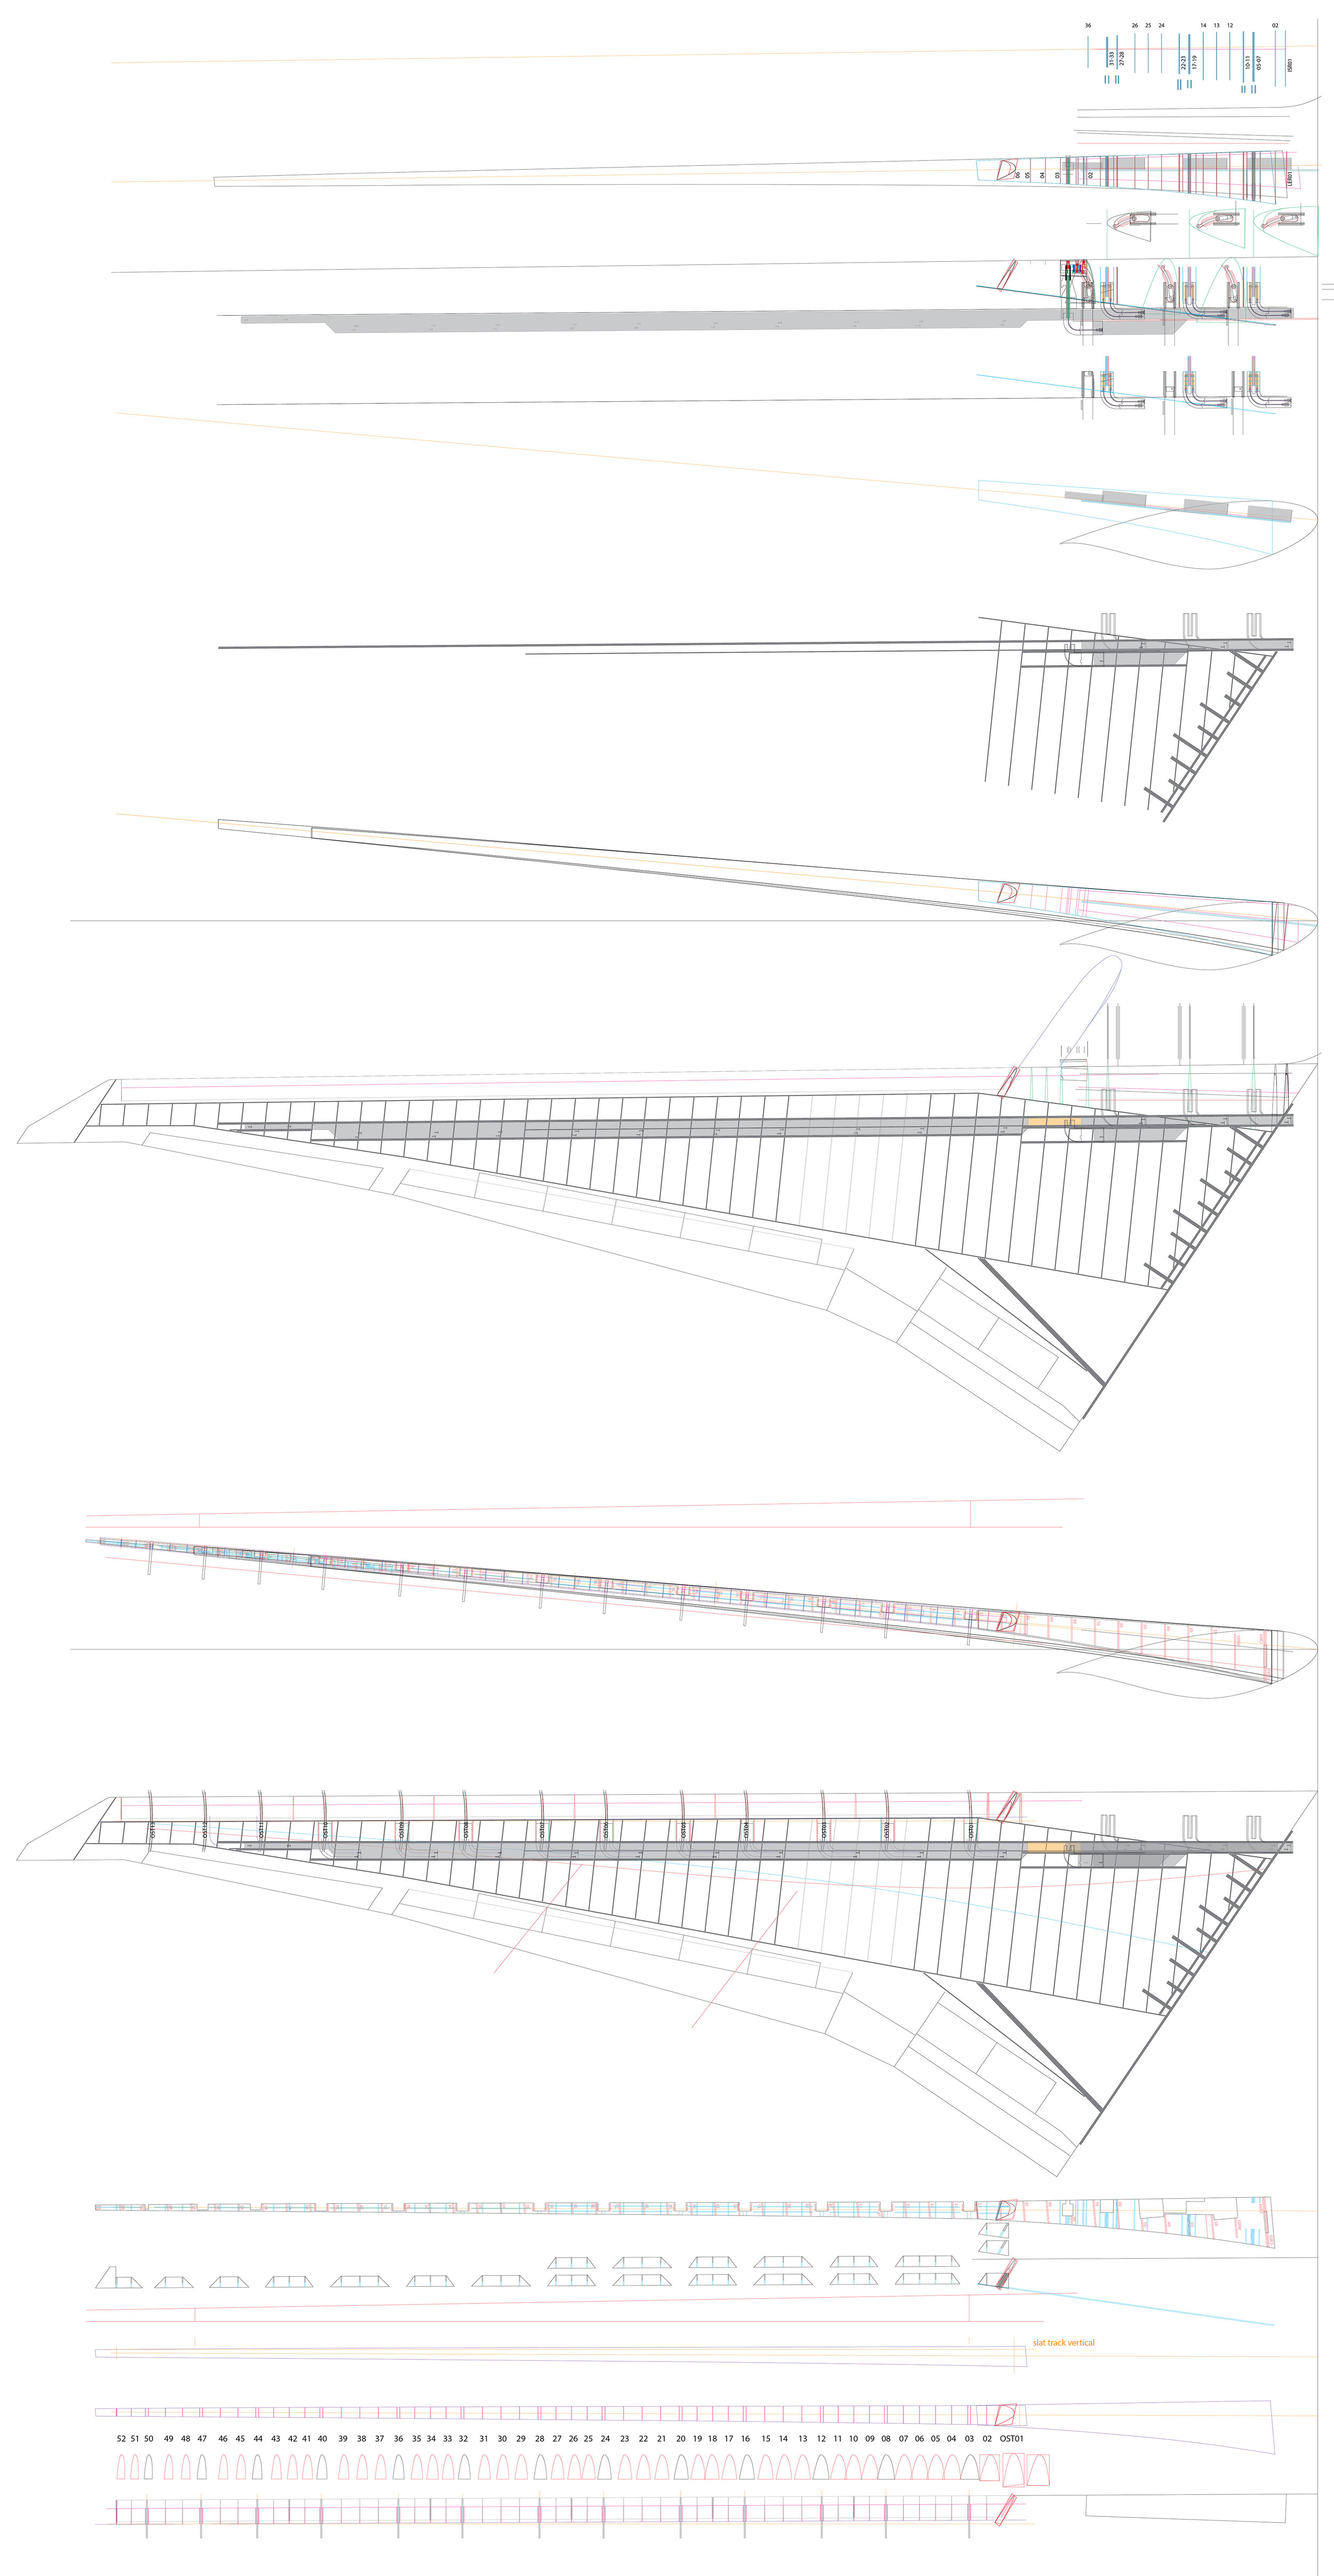 Wings - slats - drawings 1.jpg